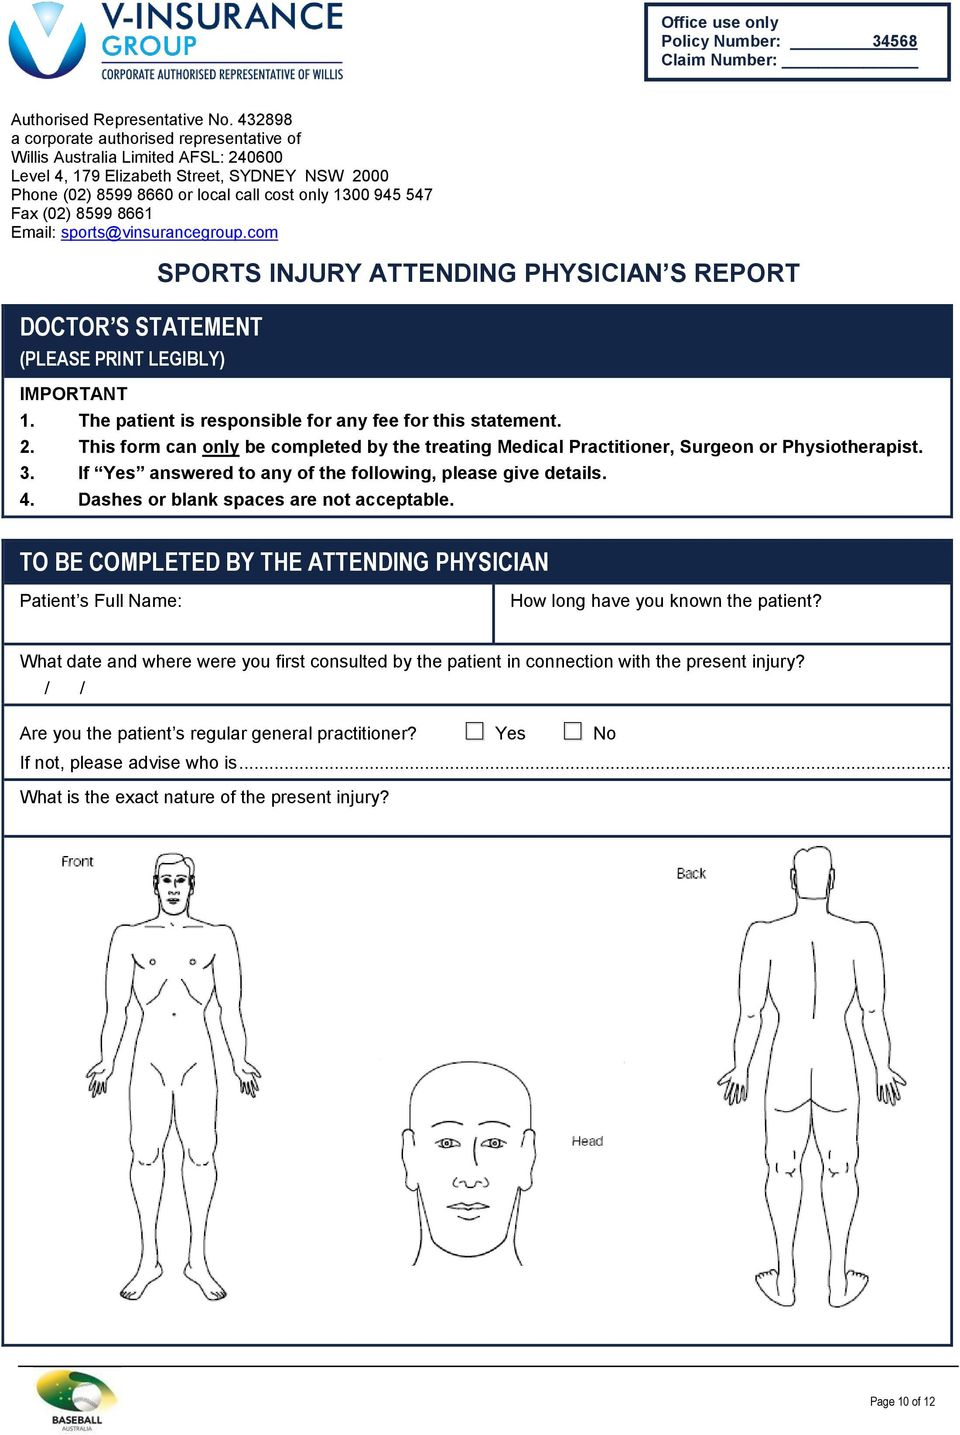 8599 8661 Email: sports@vinsurancegroup.com DOCTOR S STATEMENT (PLEASE PRINT LEGIBLY) IMPORTANT SPORTS INJURY ATTENDING PHYSICIAN S REPORT 1. The patient is responsible for any fee for this statement.